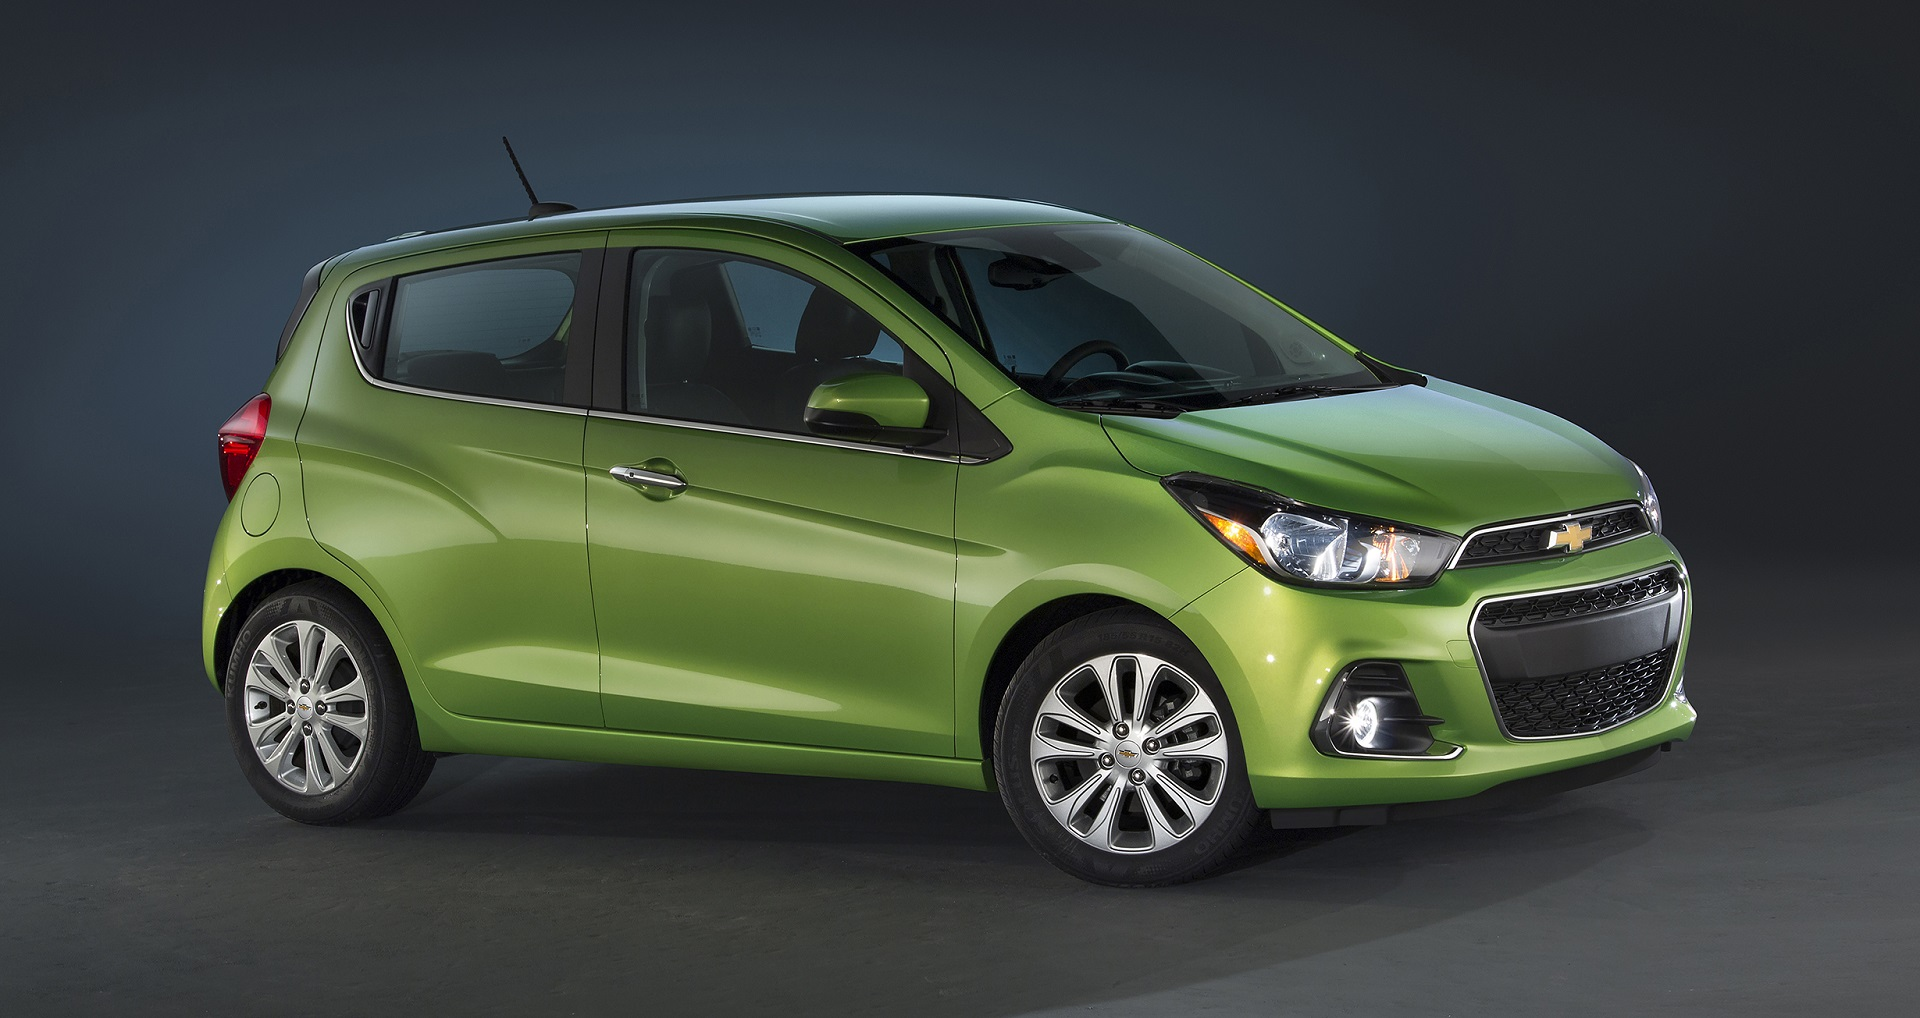 2017 chevrolet spark chevy review ratings specs. Black Bedroom Furniture Sets. Home Design Ideas